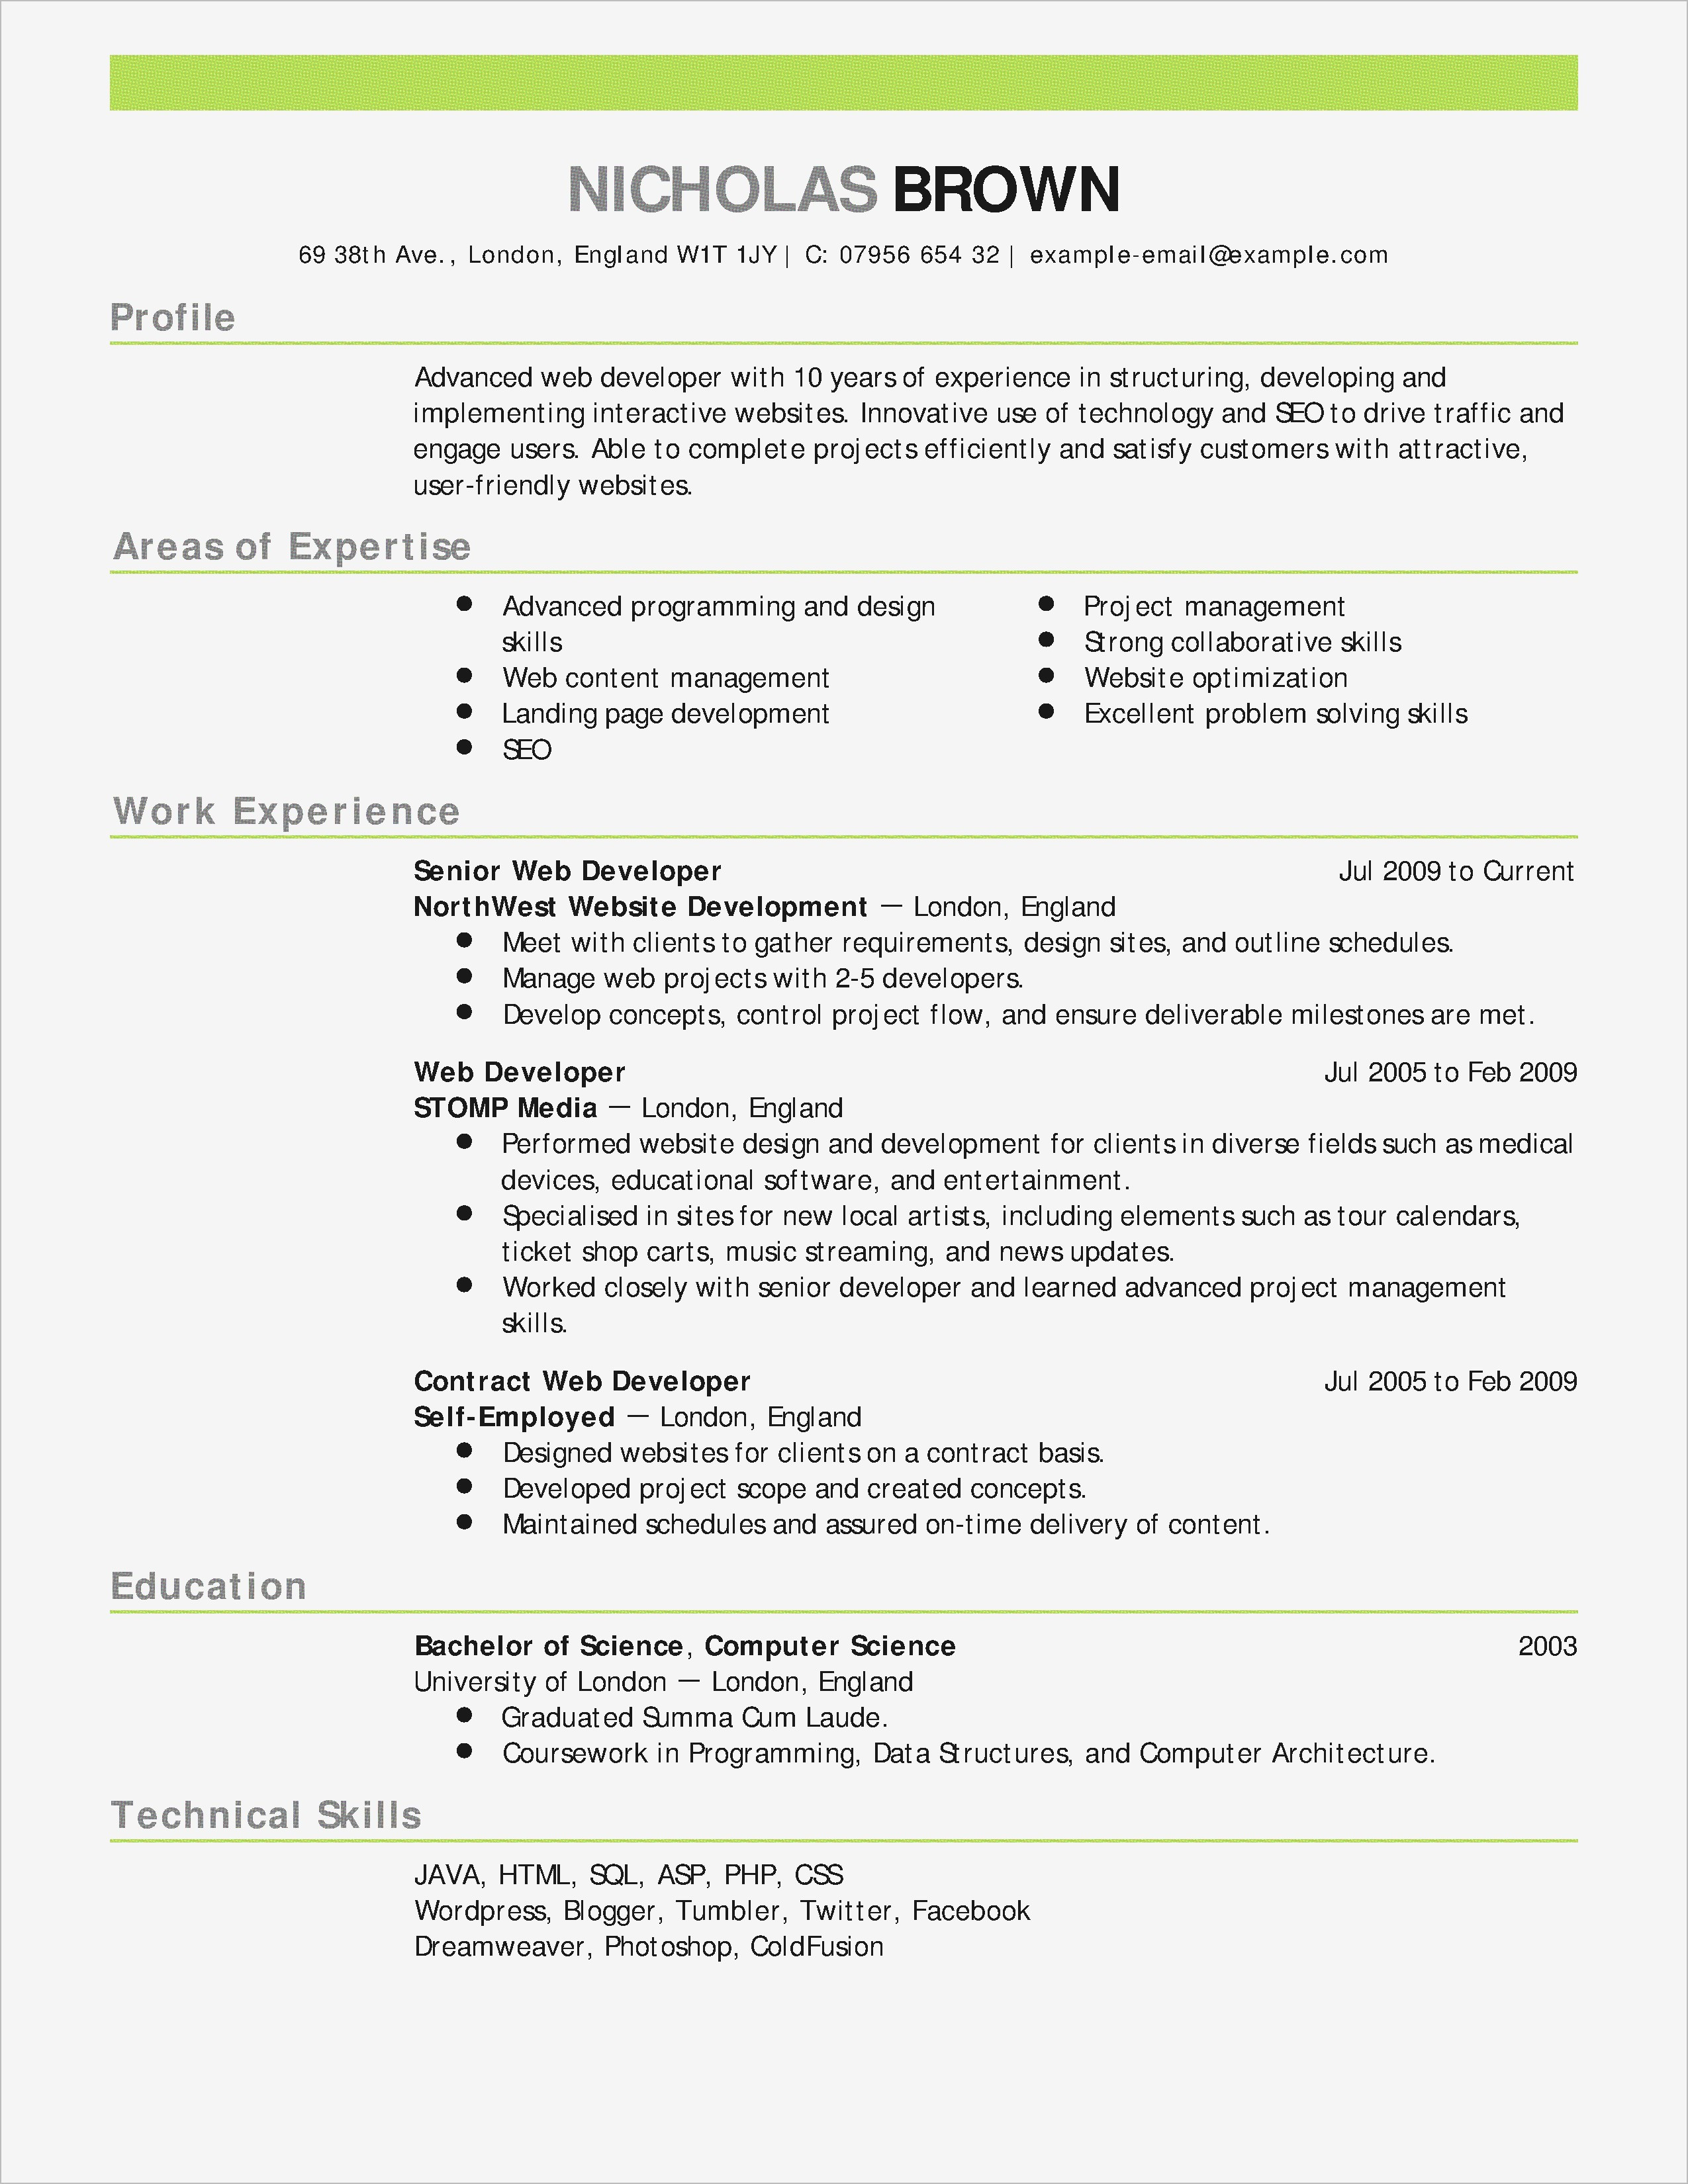 Business Cover Letter Template Download - √ Music Download for Powerpoint Authentic Best Powerpoint